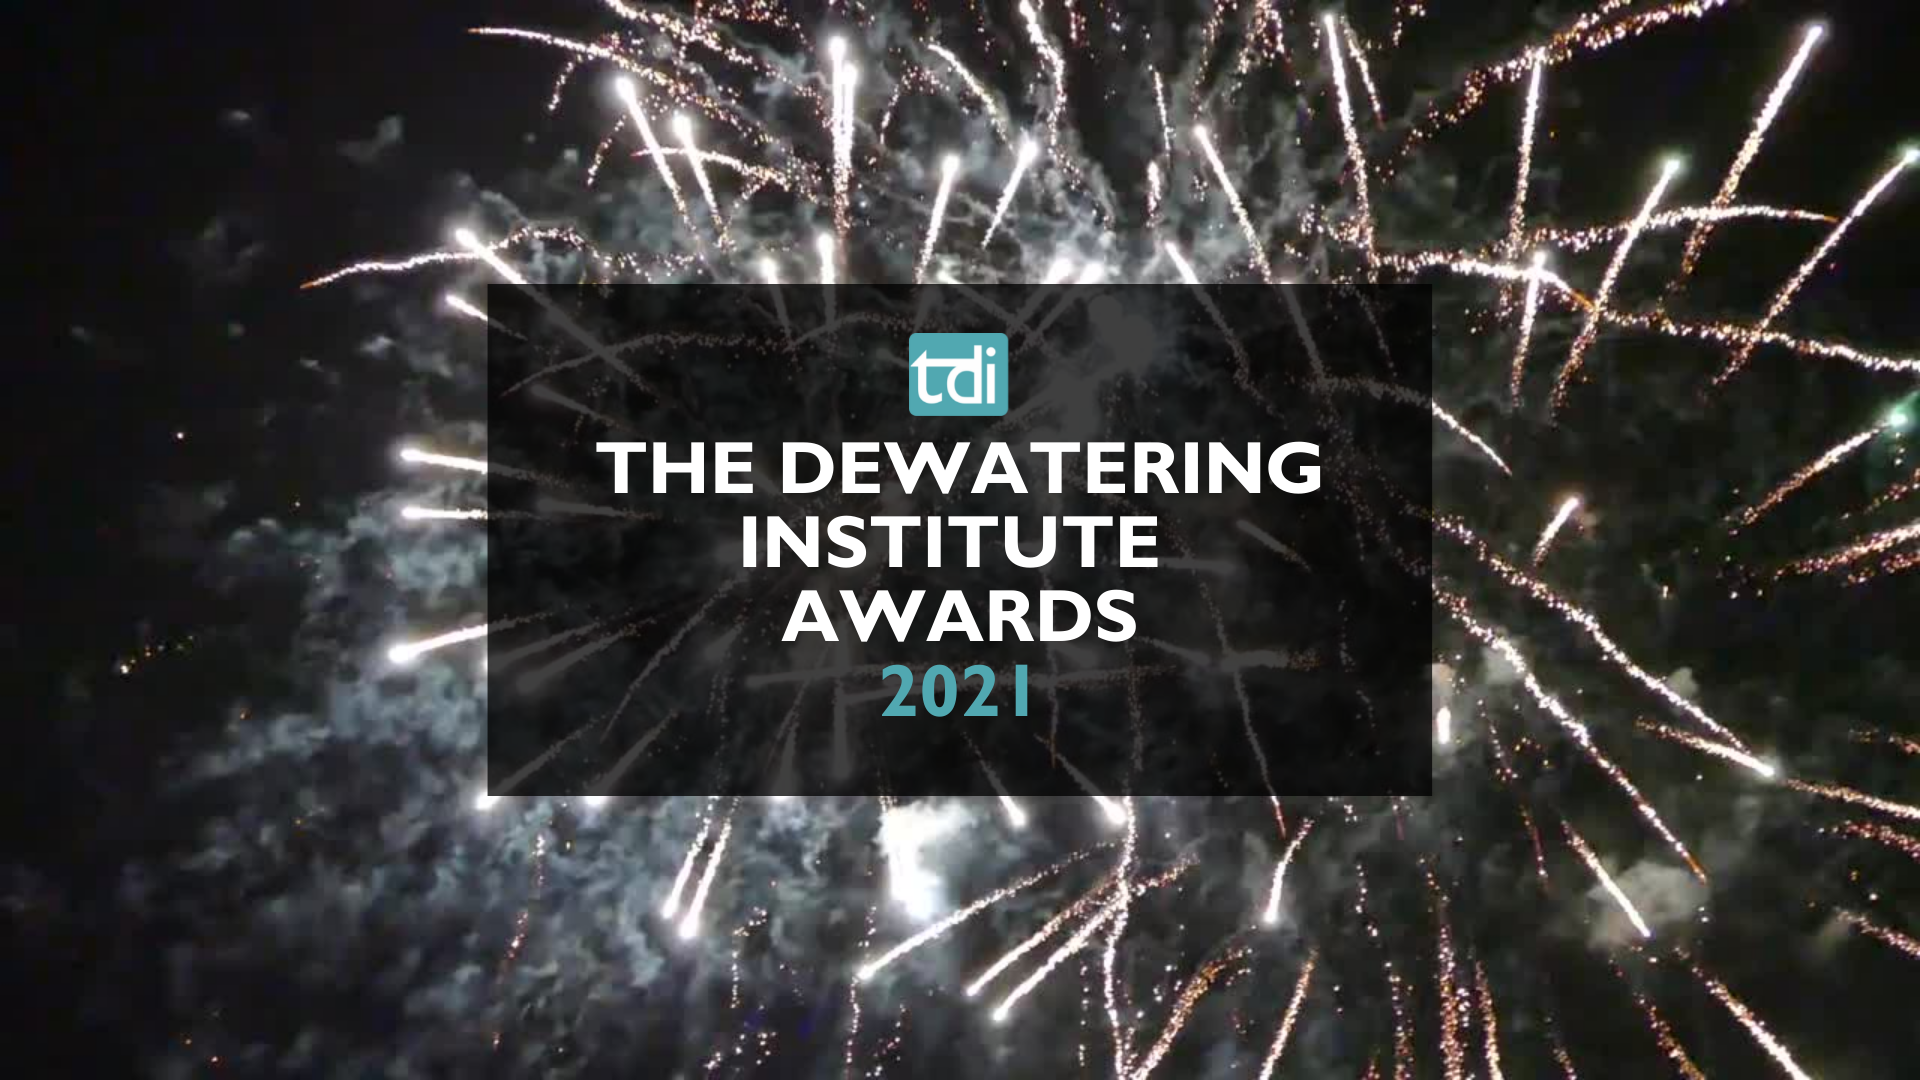 THE DEWATERING INSTITUTE AWARDS 2021